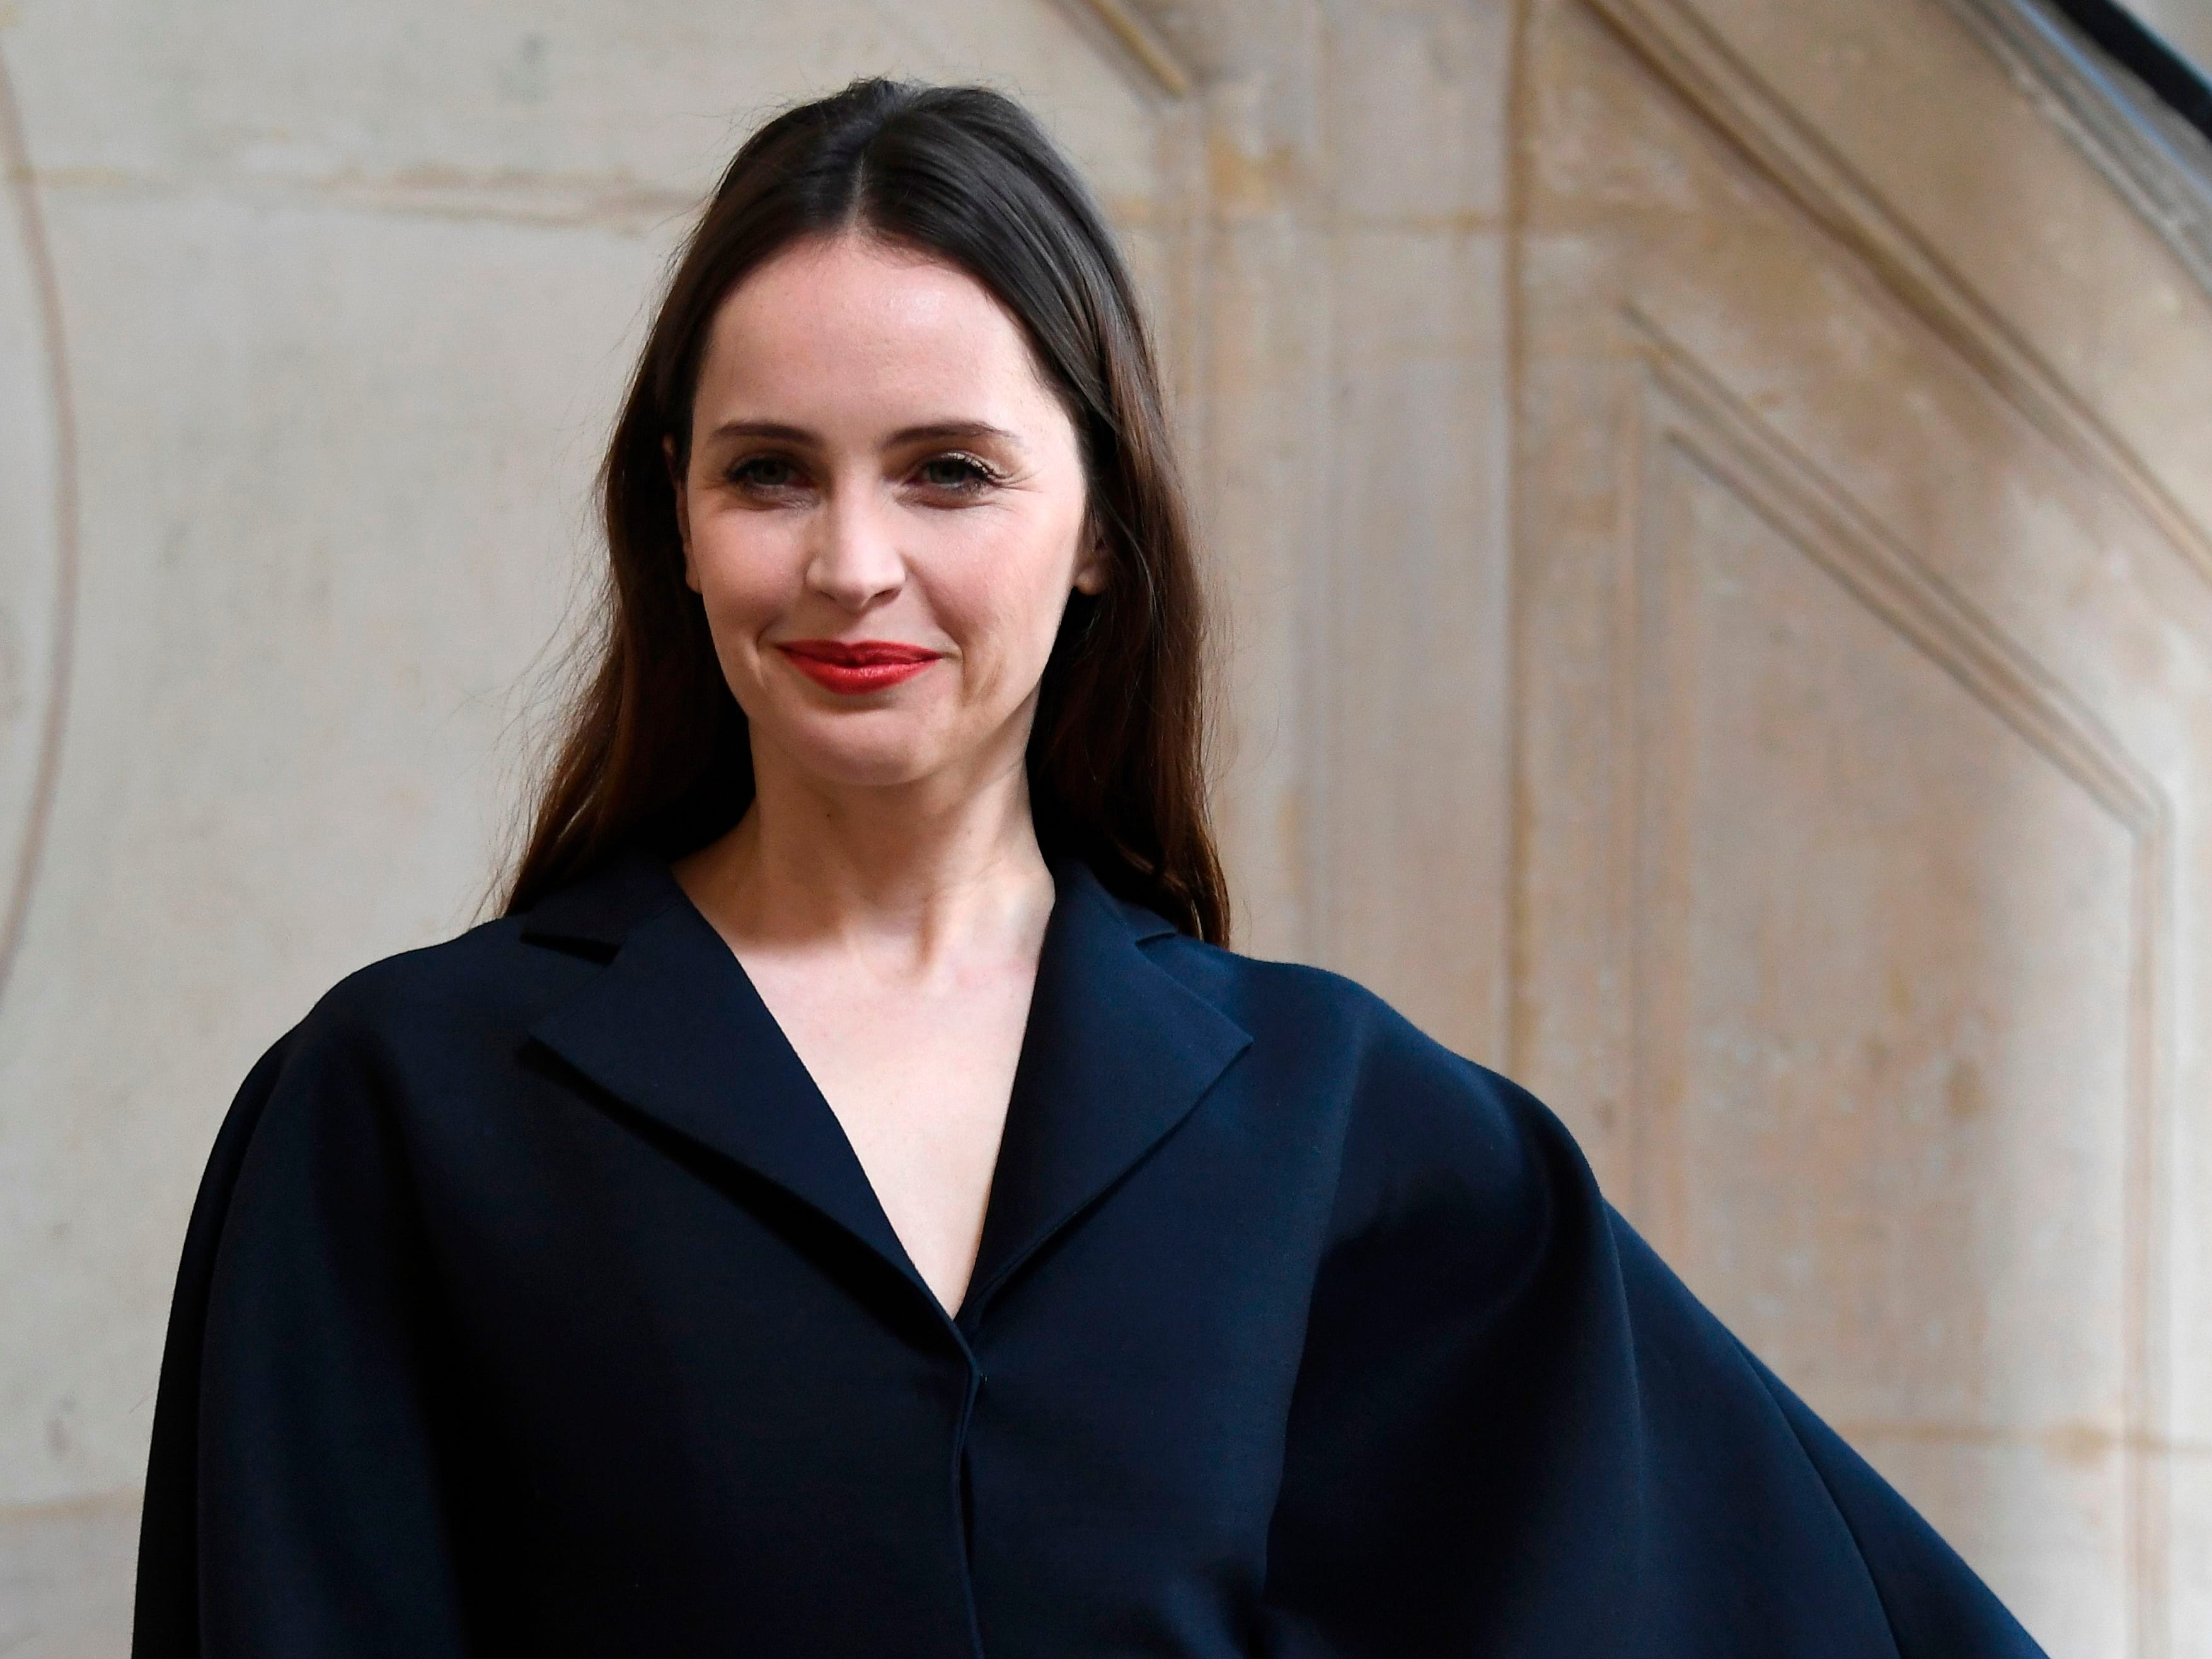 British actress Felicity Jones poses during a photocall prior to the 2019 Spring-Summer Haute Couture collection fashion show by Christian Dior in Paris, on January 21, 2019. (Photo by Anne-Christine POUJOULAT / AFP)ANNE-CHRISTINE POUJOULAT/AFP/Getty Images ORIG FILE ID: AFP_1CG6GG